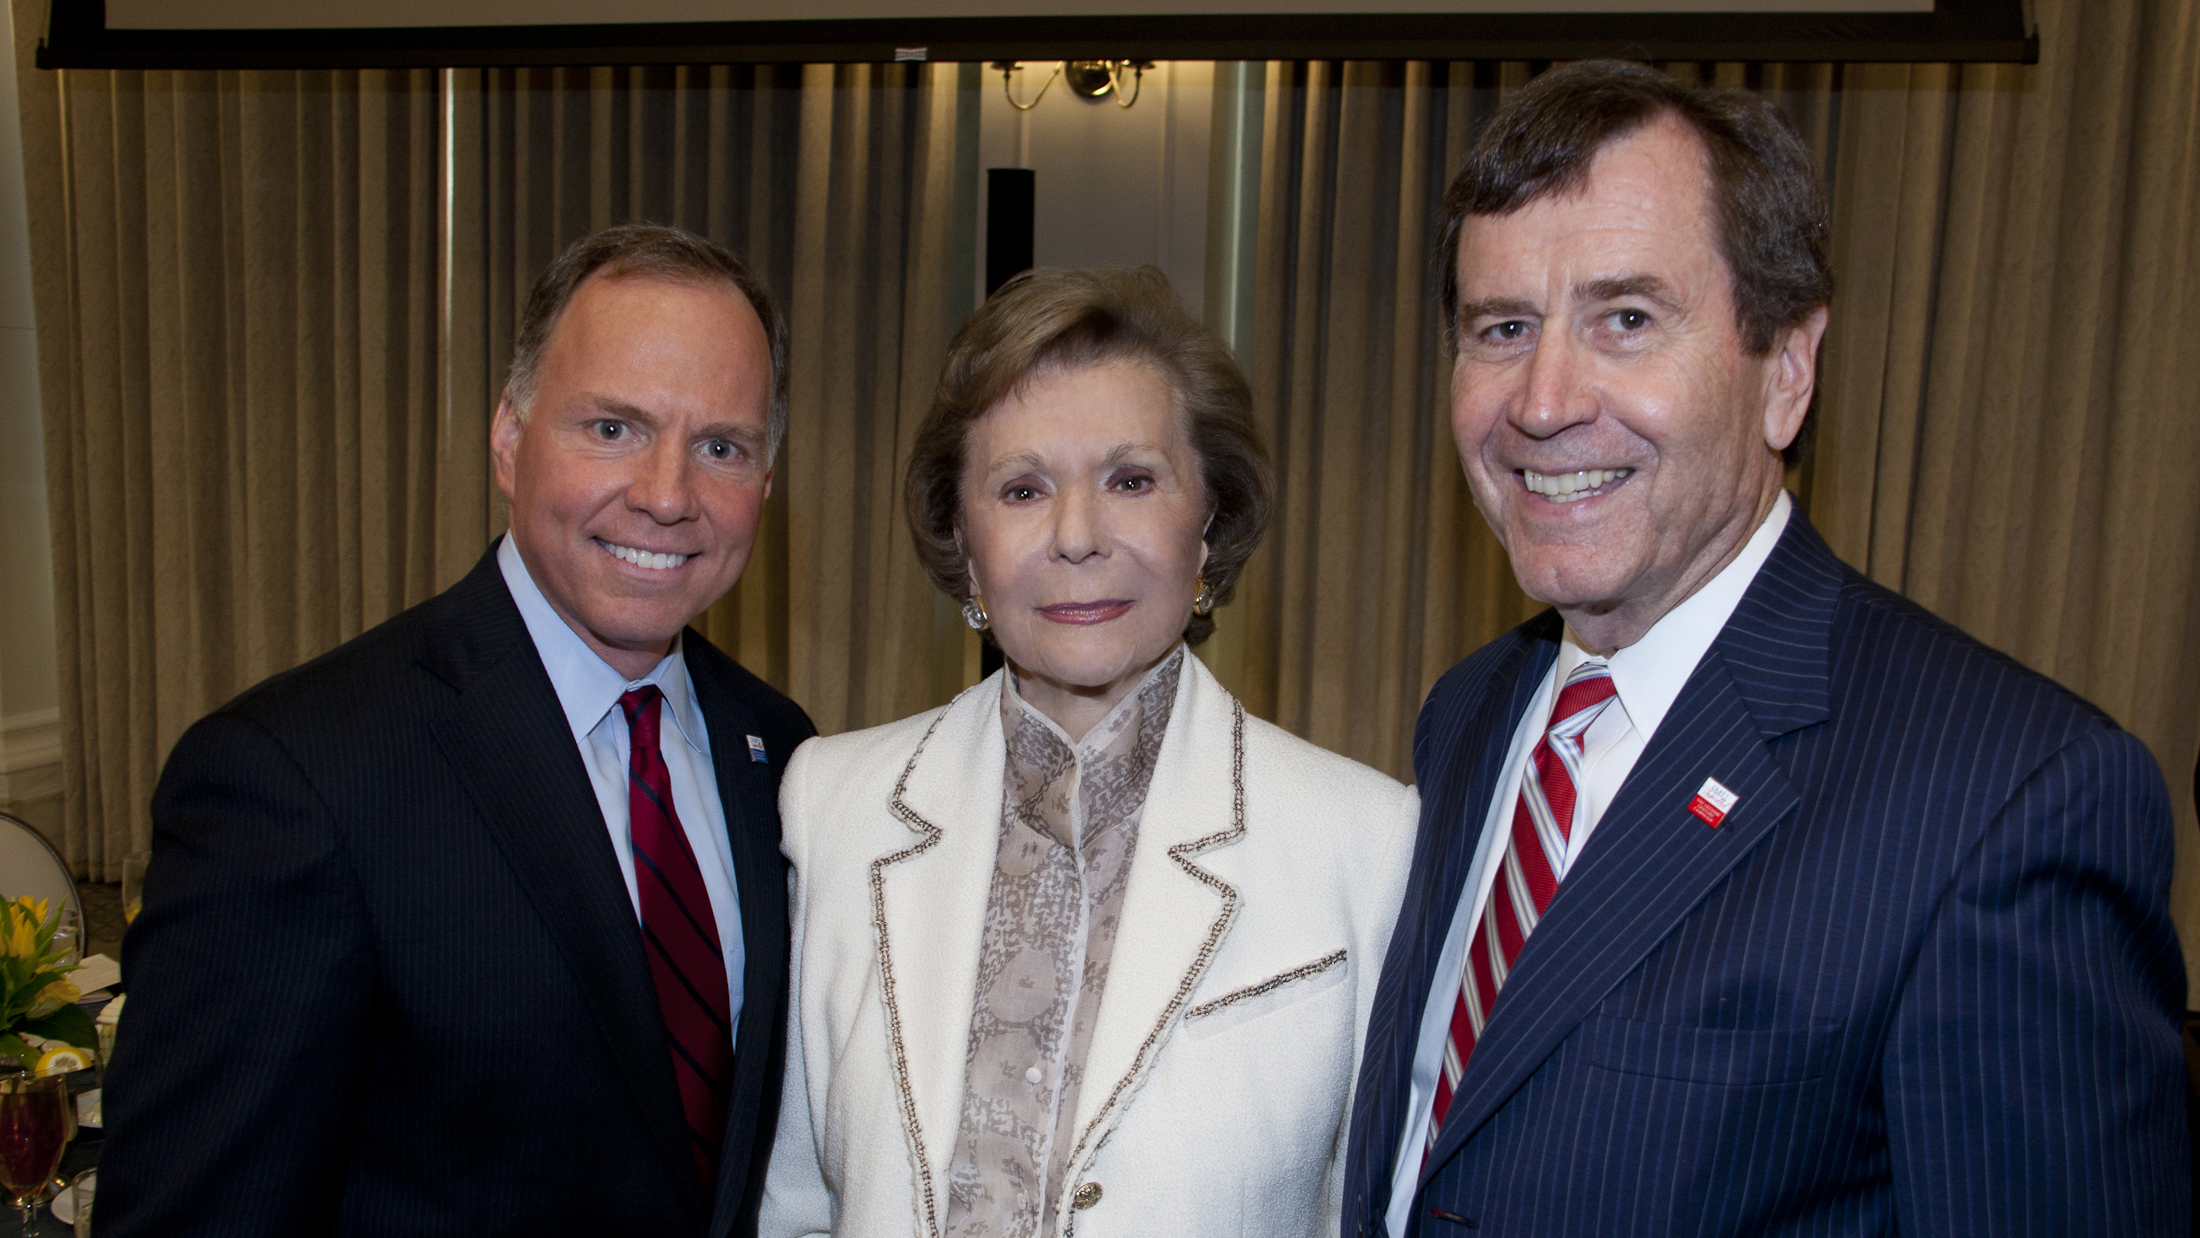 Left to Right: Brad E. Cheves, Ruth Altshuler, R. Gerald Turner